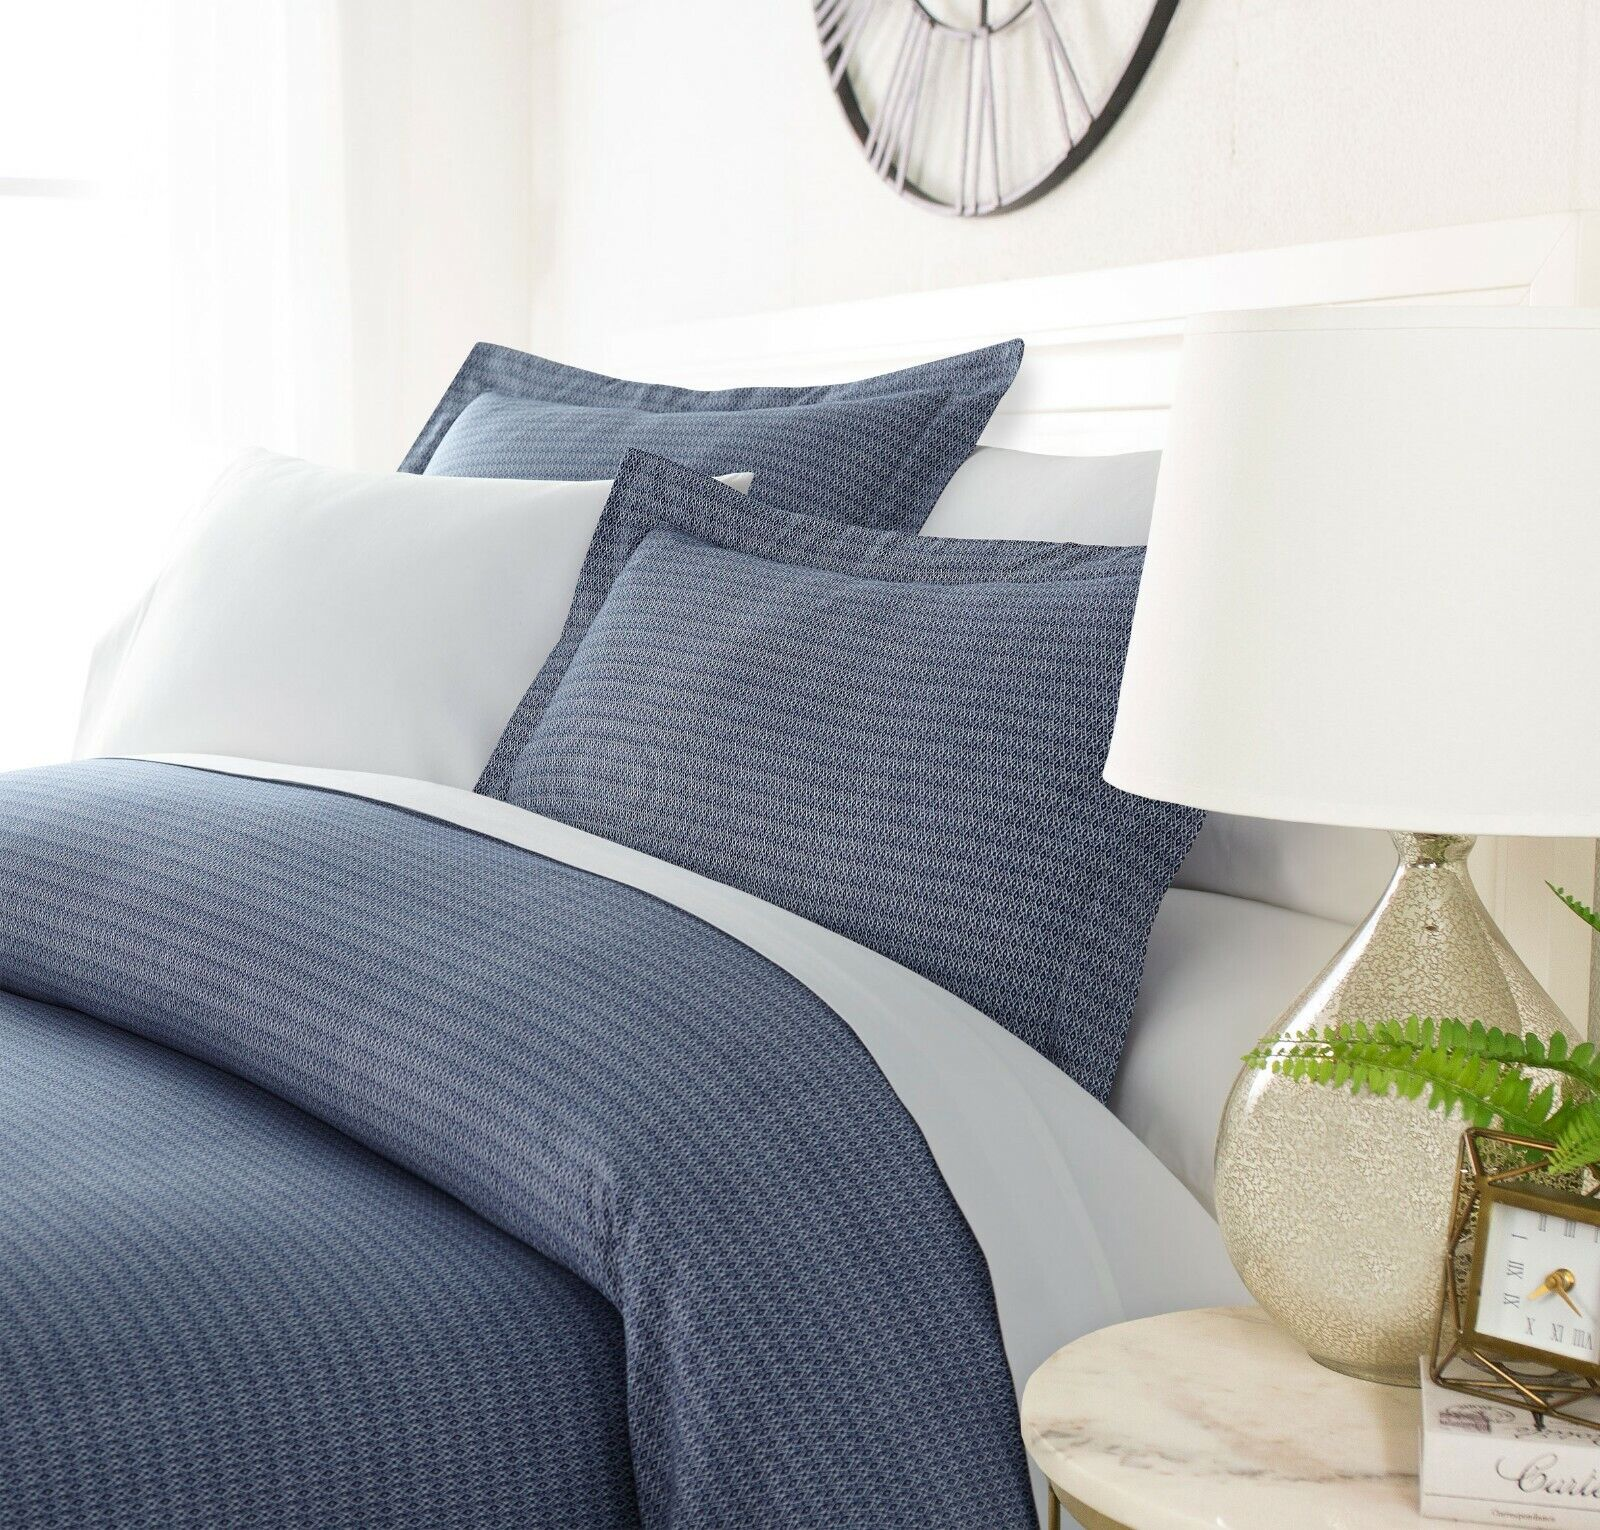 Luxury Ultra Soft Woven Dreams Duvet Cover Set By Sharon Osbourne Home